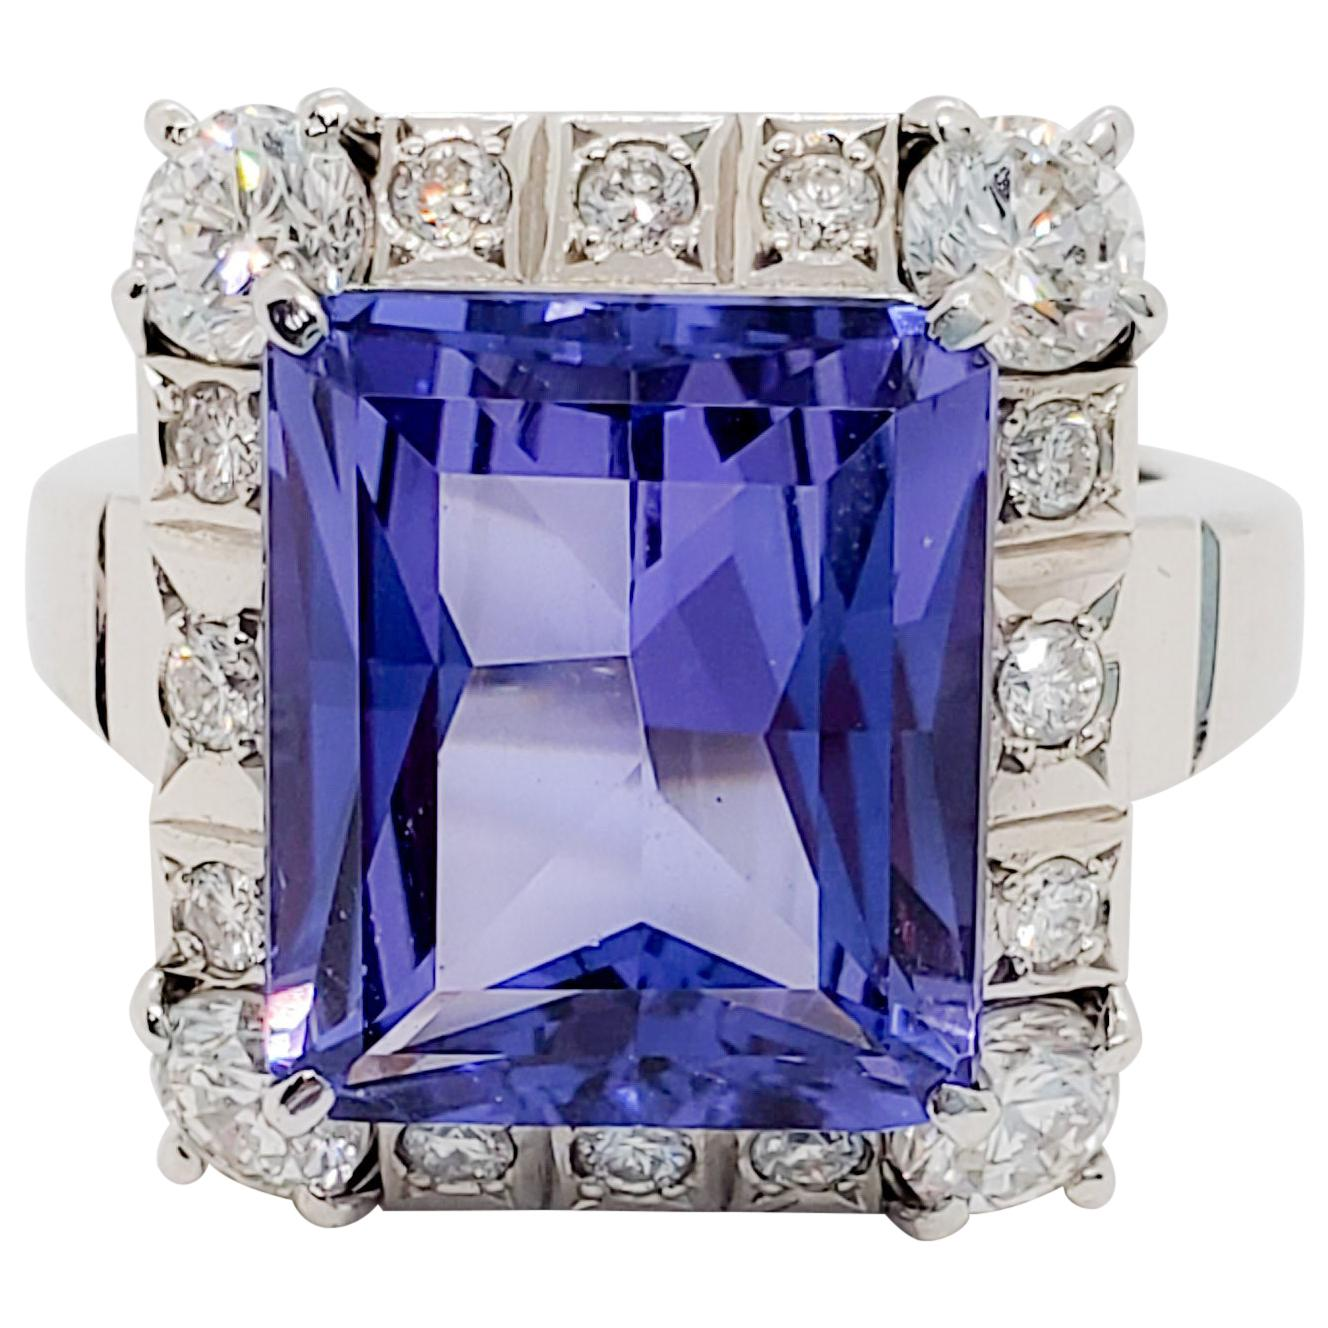 Tanzanite Emerald Cut and White Diamond Cocktail Ring in Platinum